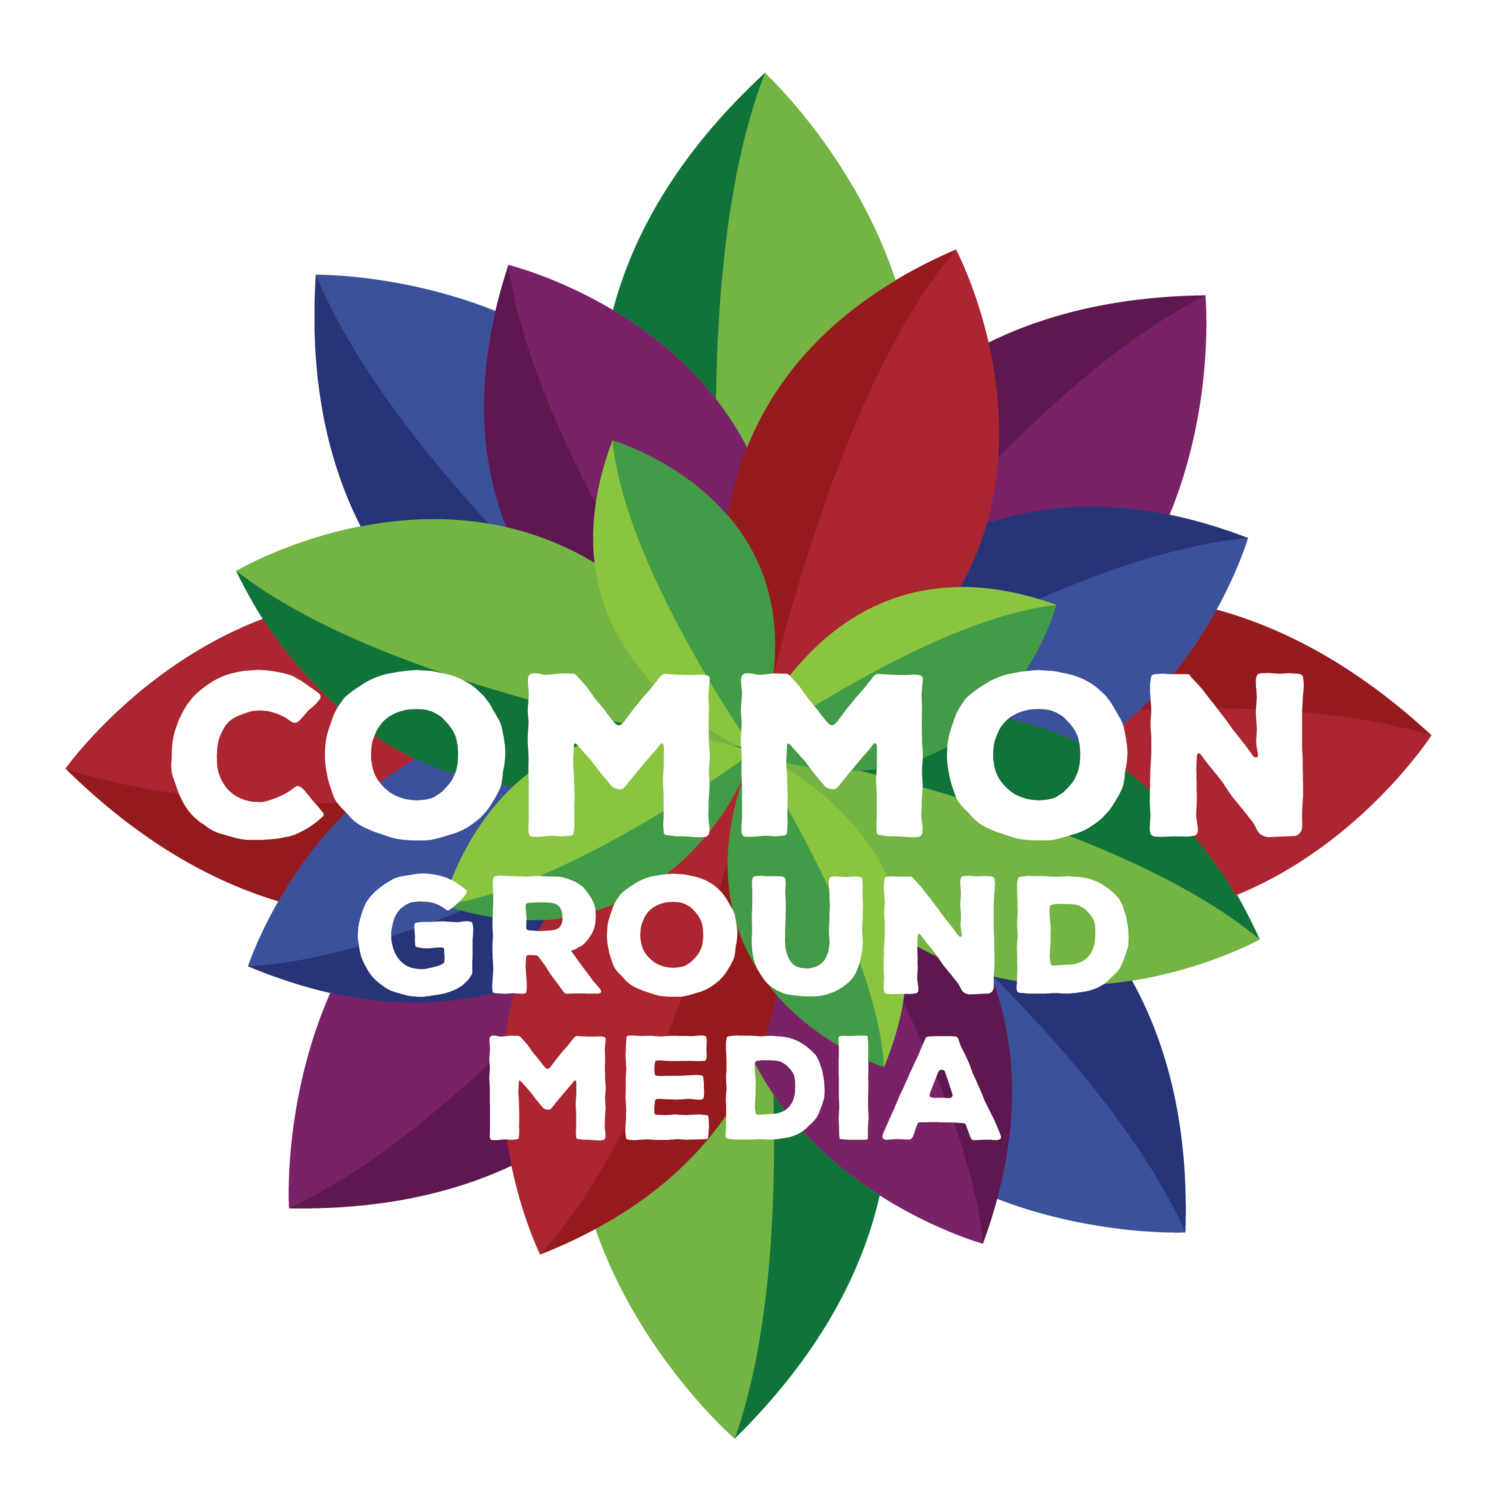 Common Ground Media